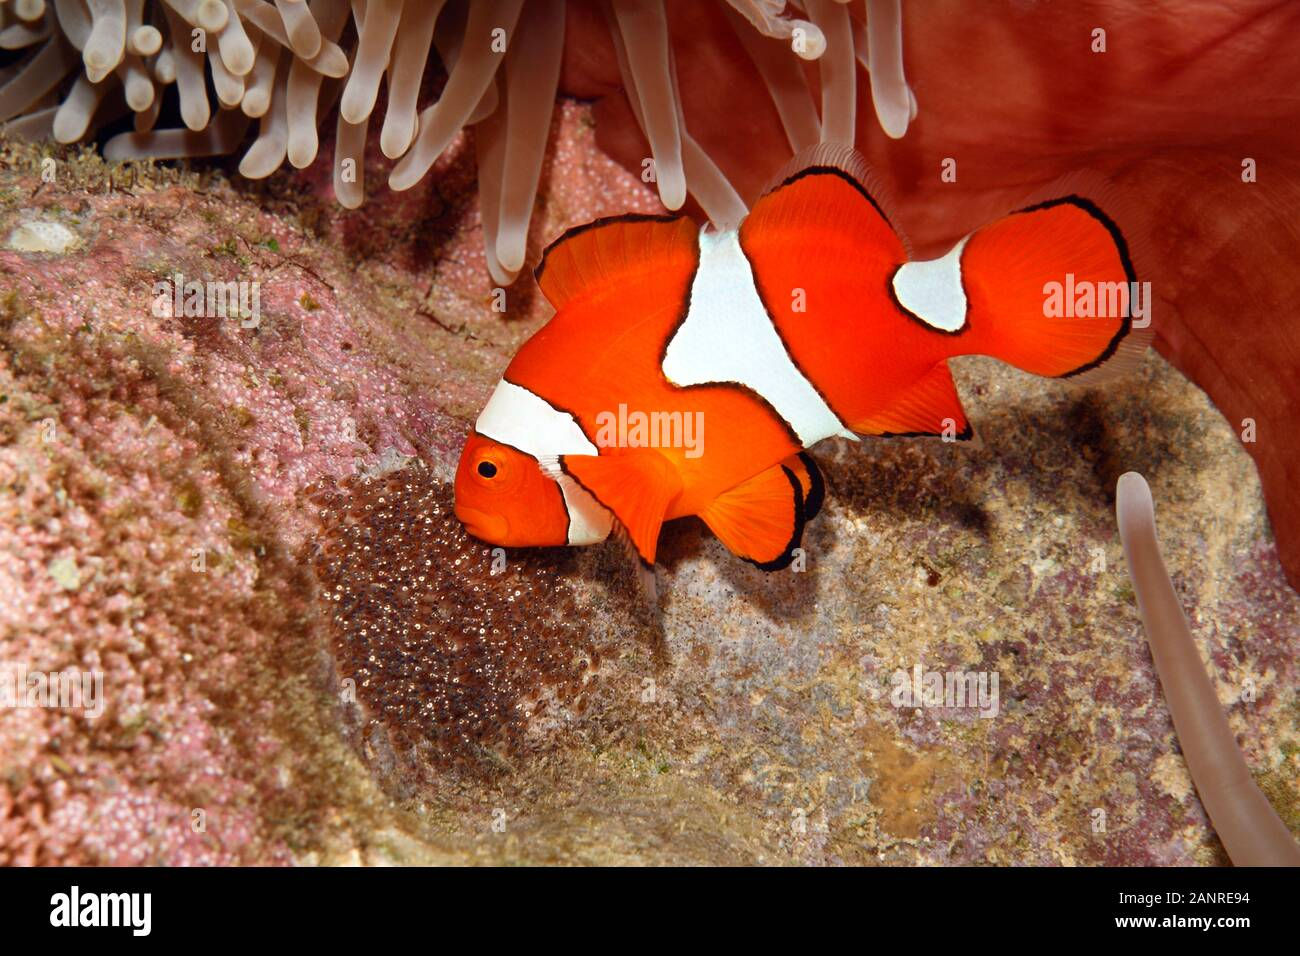 clownfish-amphiprion-percula-male-fish-aerating-eggs-laid-cleared-substrate-underneath-the-host-magnificent-sea-anemone-heteractis-magnifica-2ANRE94.jpg